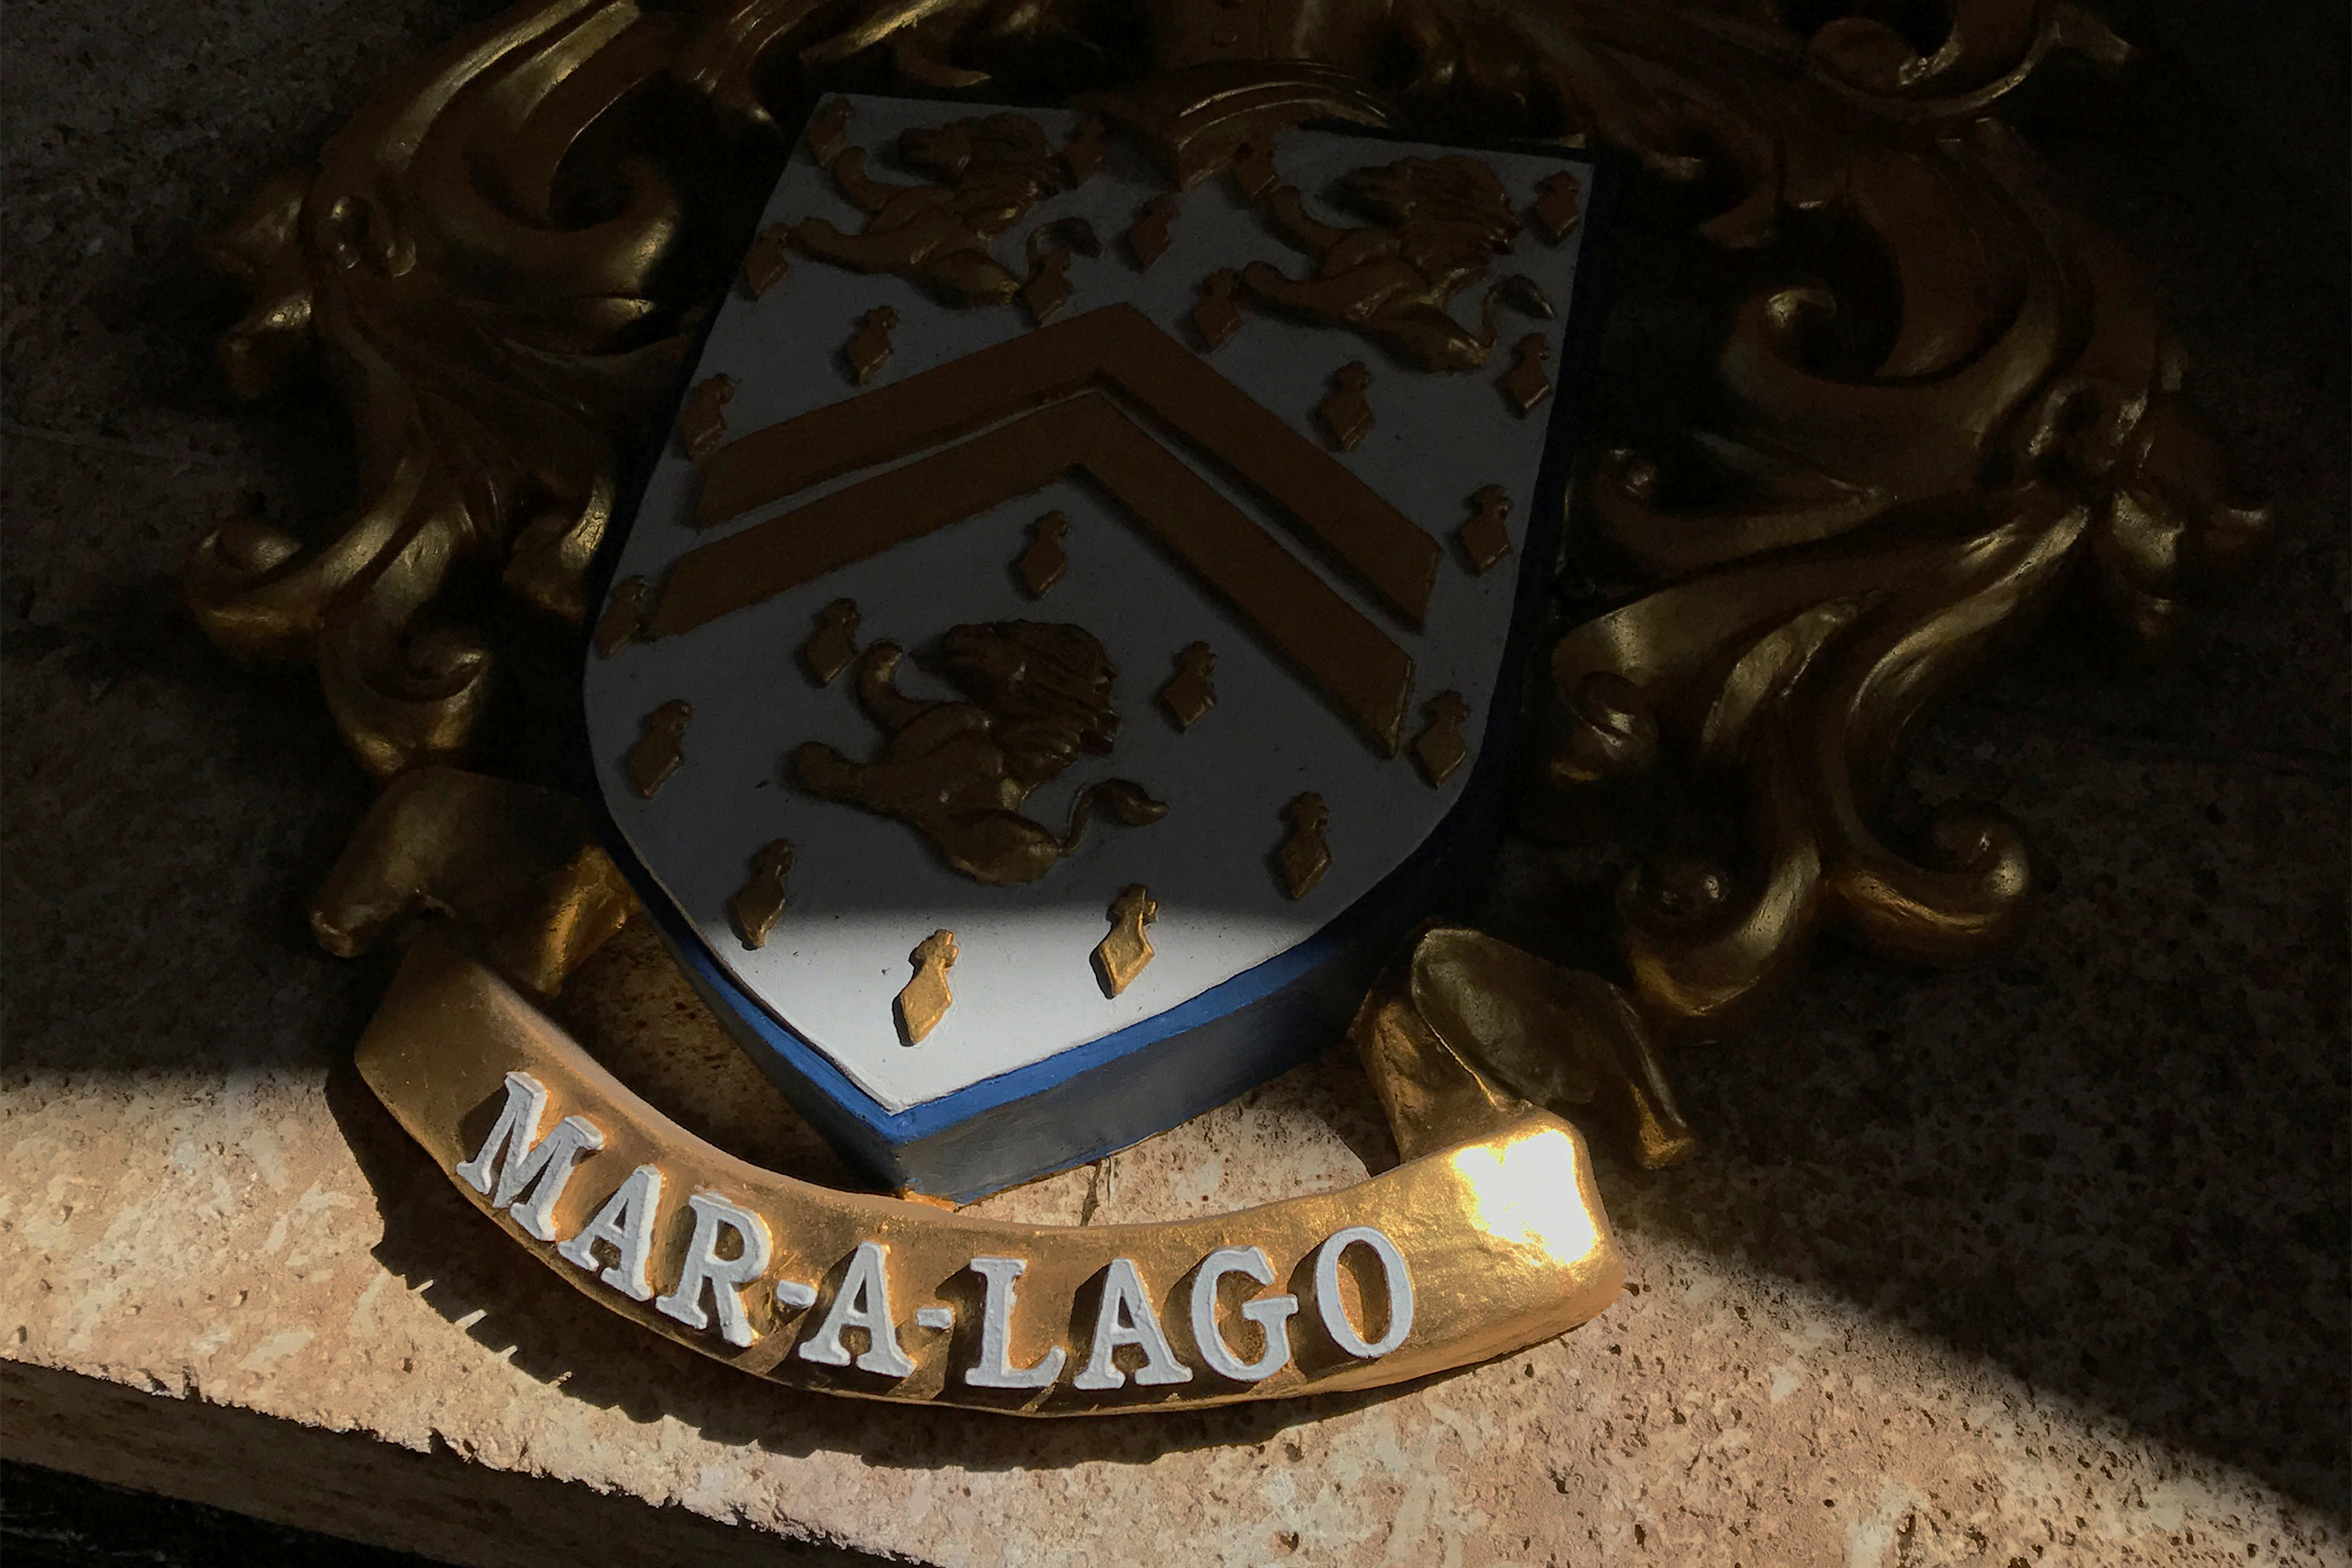 Sunlight illuminates part of a coat of arms at the Mar-a-Lago Club in Palm Beach, Florida, on December 28, 2016.